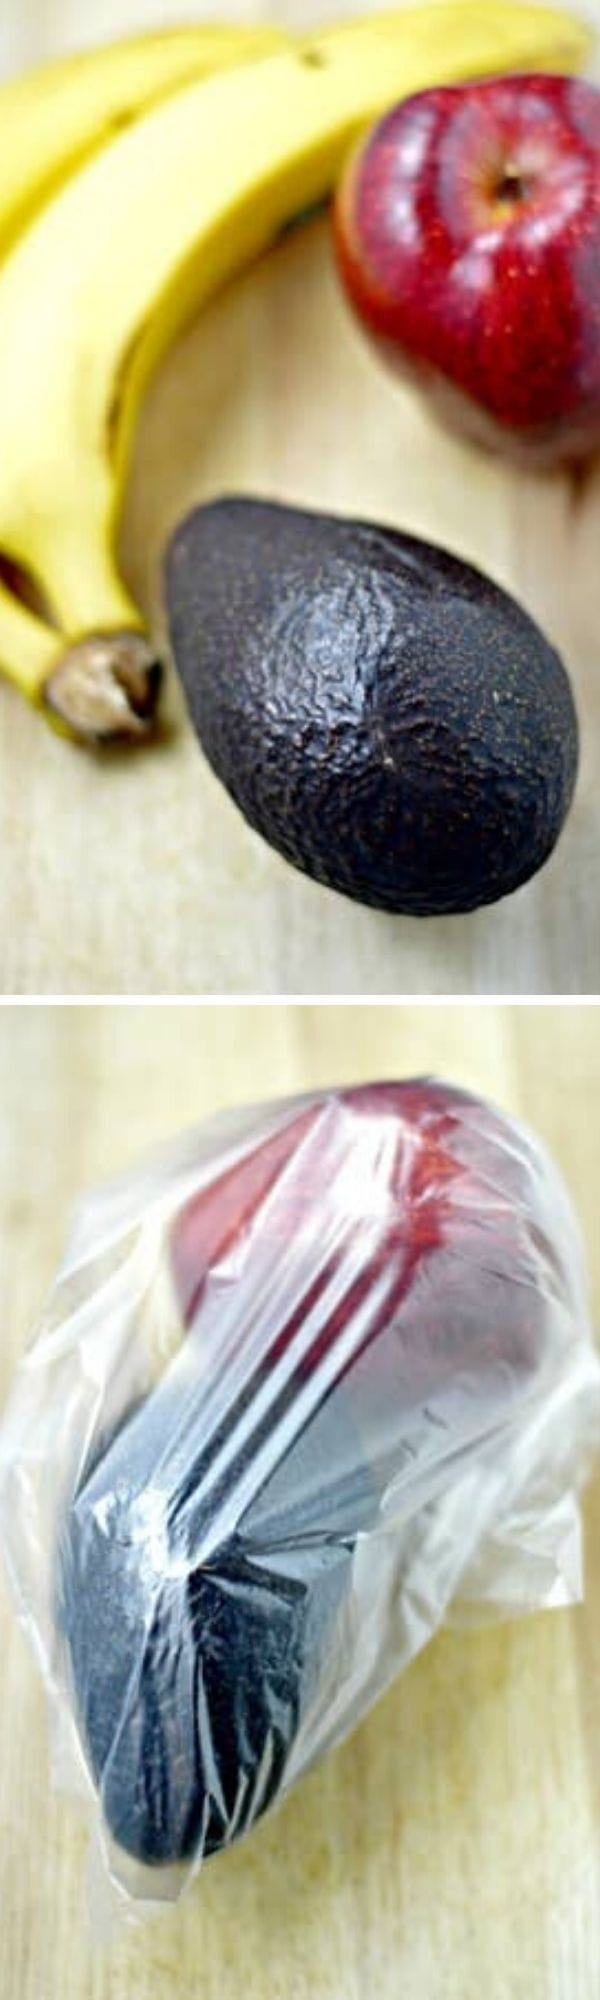 Can't wait for those avocados to ripe?